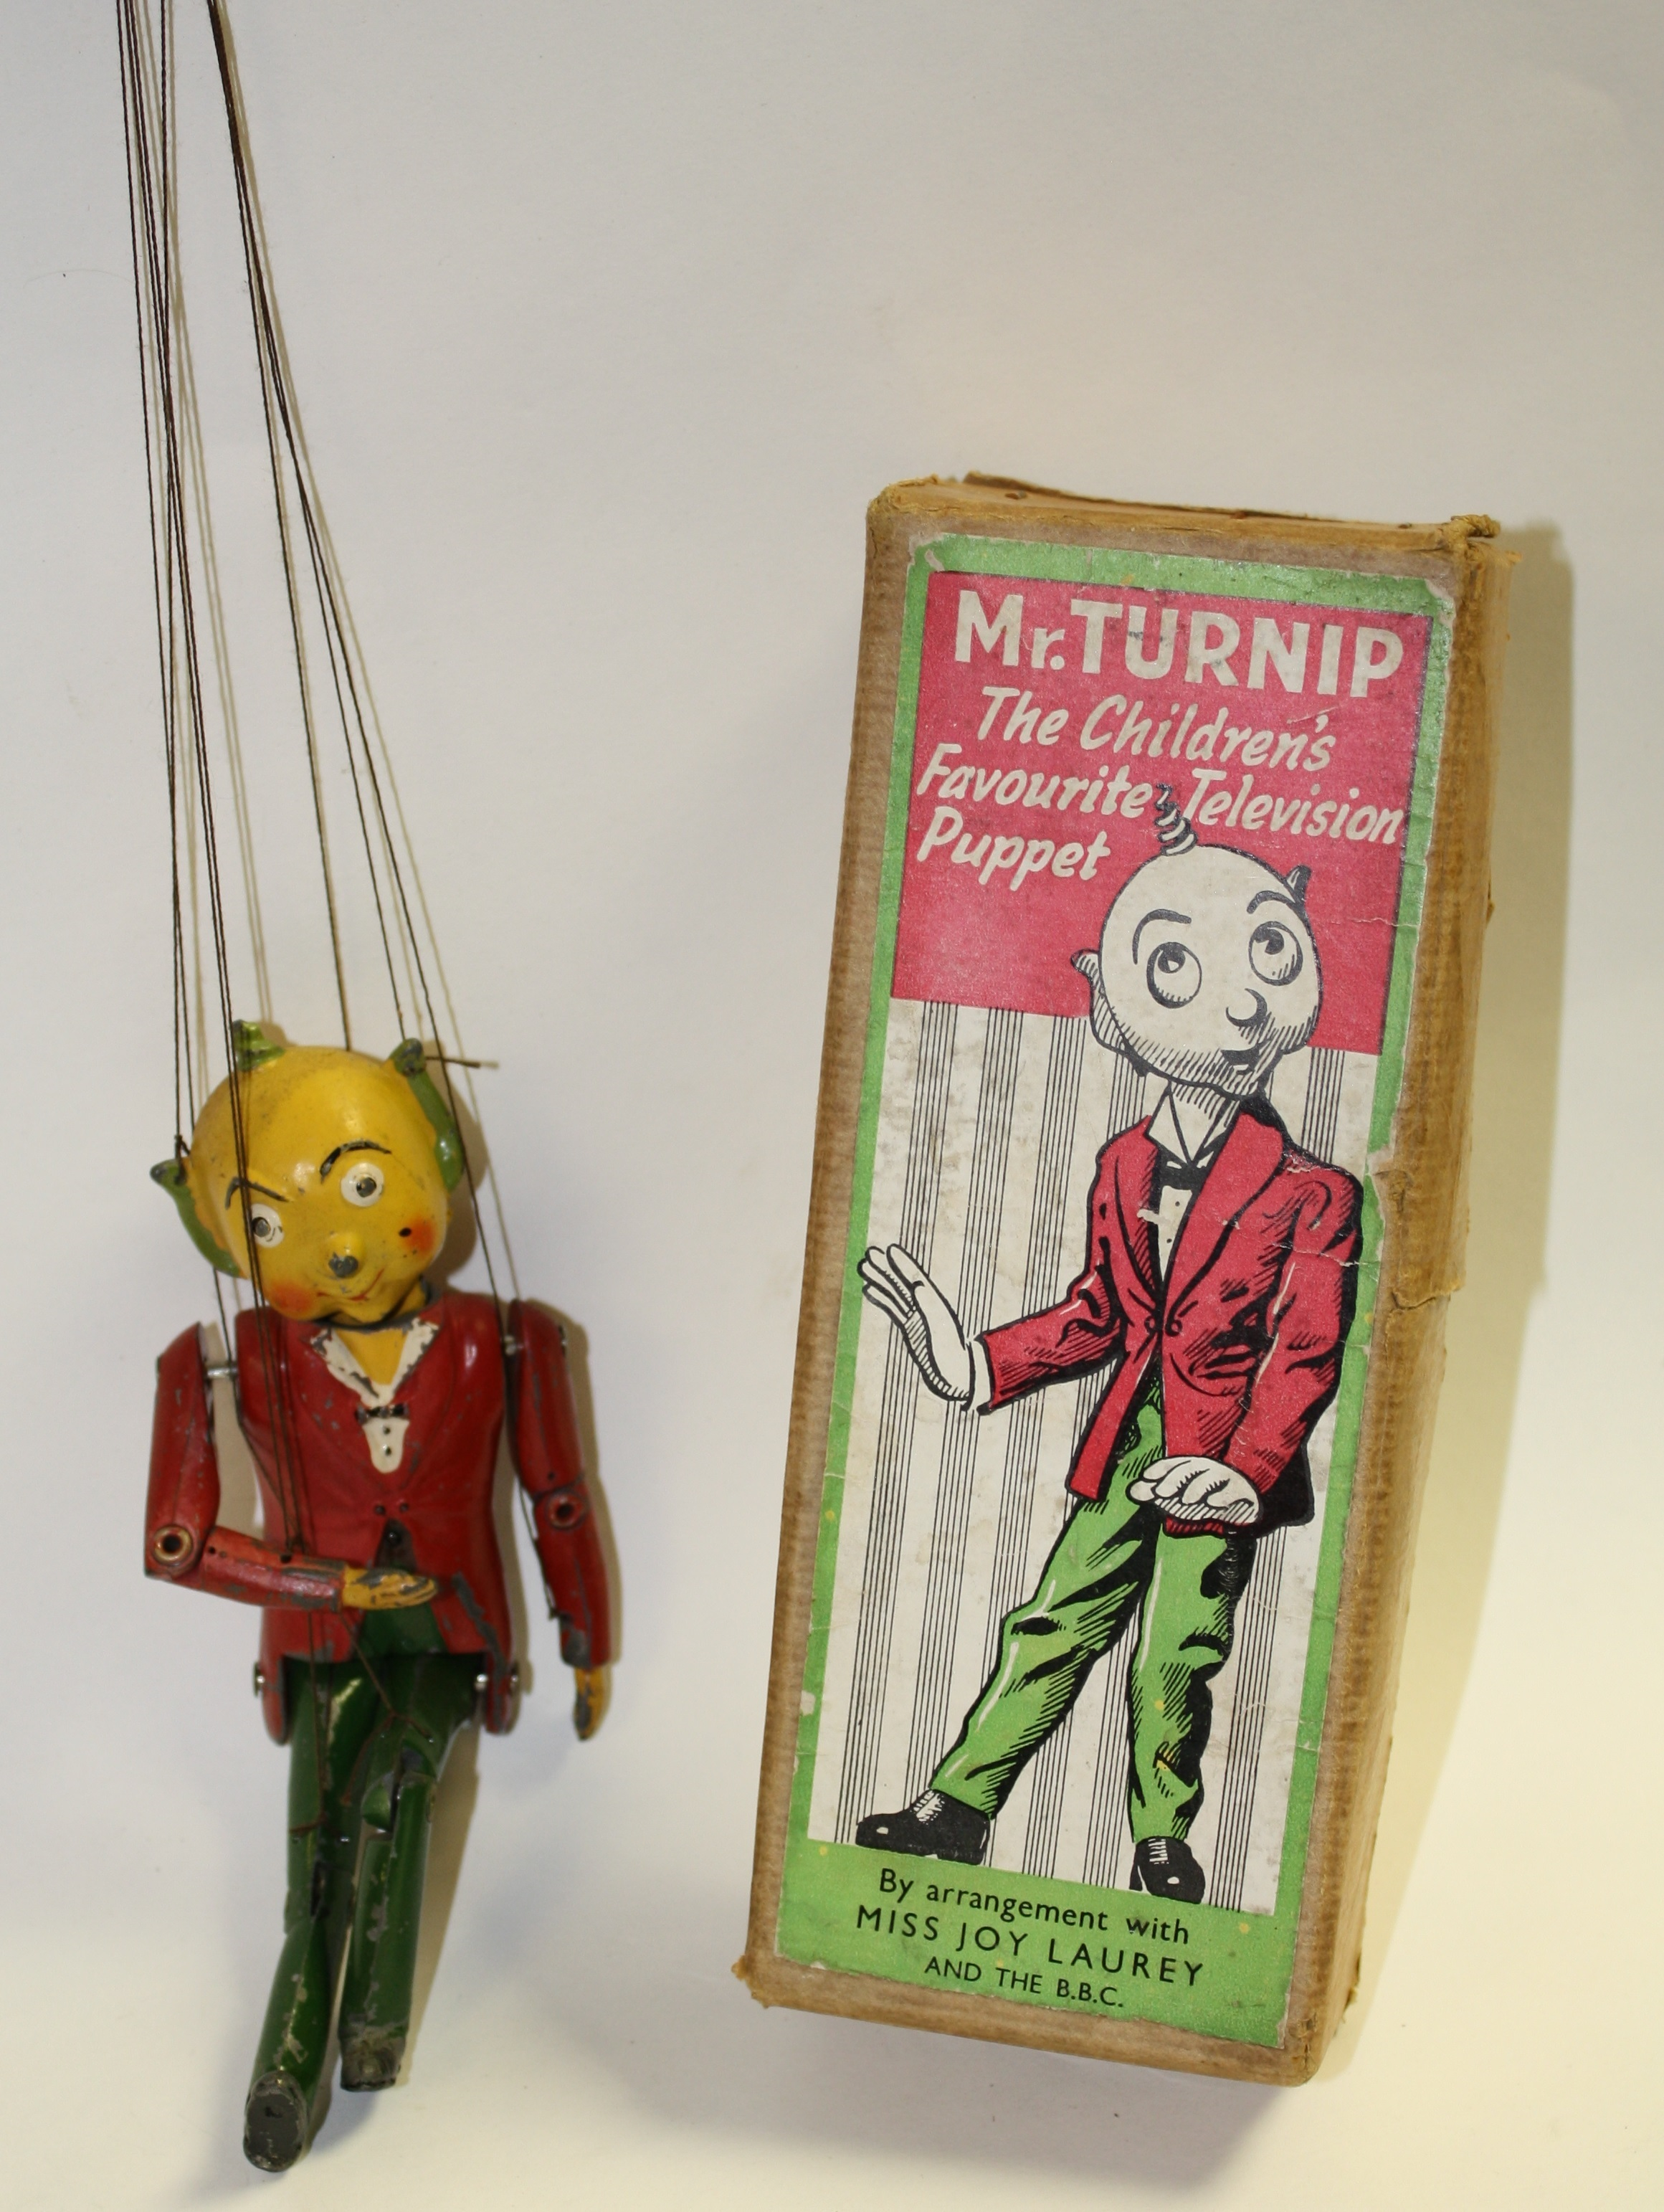 Lot 5178 - A mid 20th century Mr Turnip puppet toy, marked 'The Children's Favourite Television Puppet',